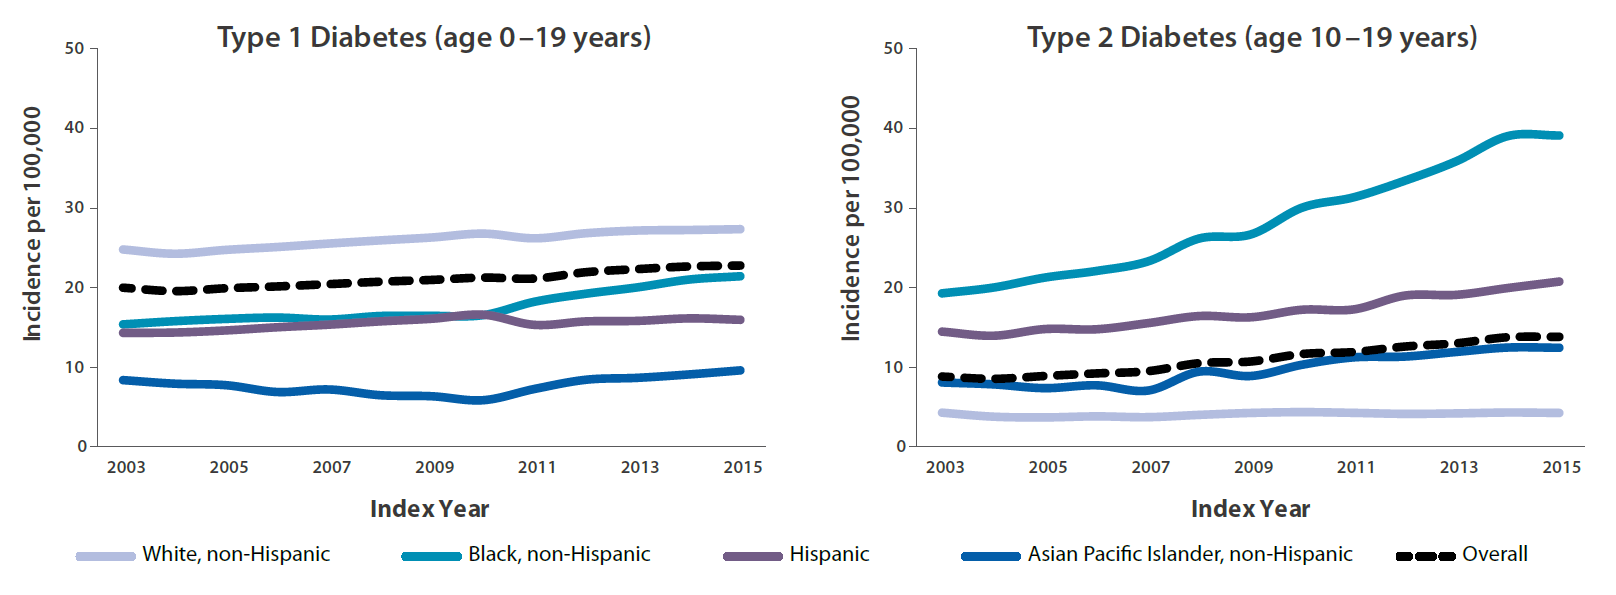 Line chart displaying Type 1 Diabetes age 0-19 years old from years 2003 to 2015 with White, non-Hispanic having the most incidences and Asian Pacific Islander, non-Hispanic having the least. Another line chart displaying Type 2 Diabetes ages 10 to 19 years old during the years 2003 to 2015 with Black, non-Hispanic leading the number of incidences and White, non-Hispanic with the least incidences.